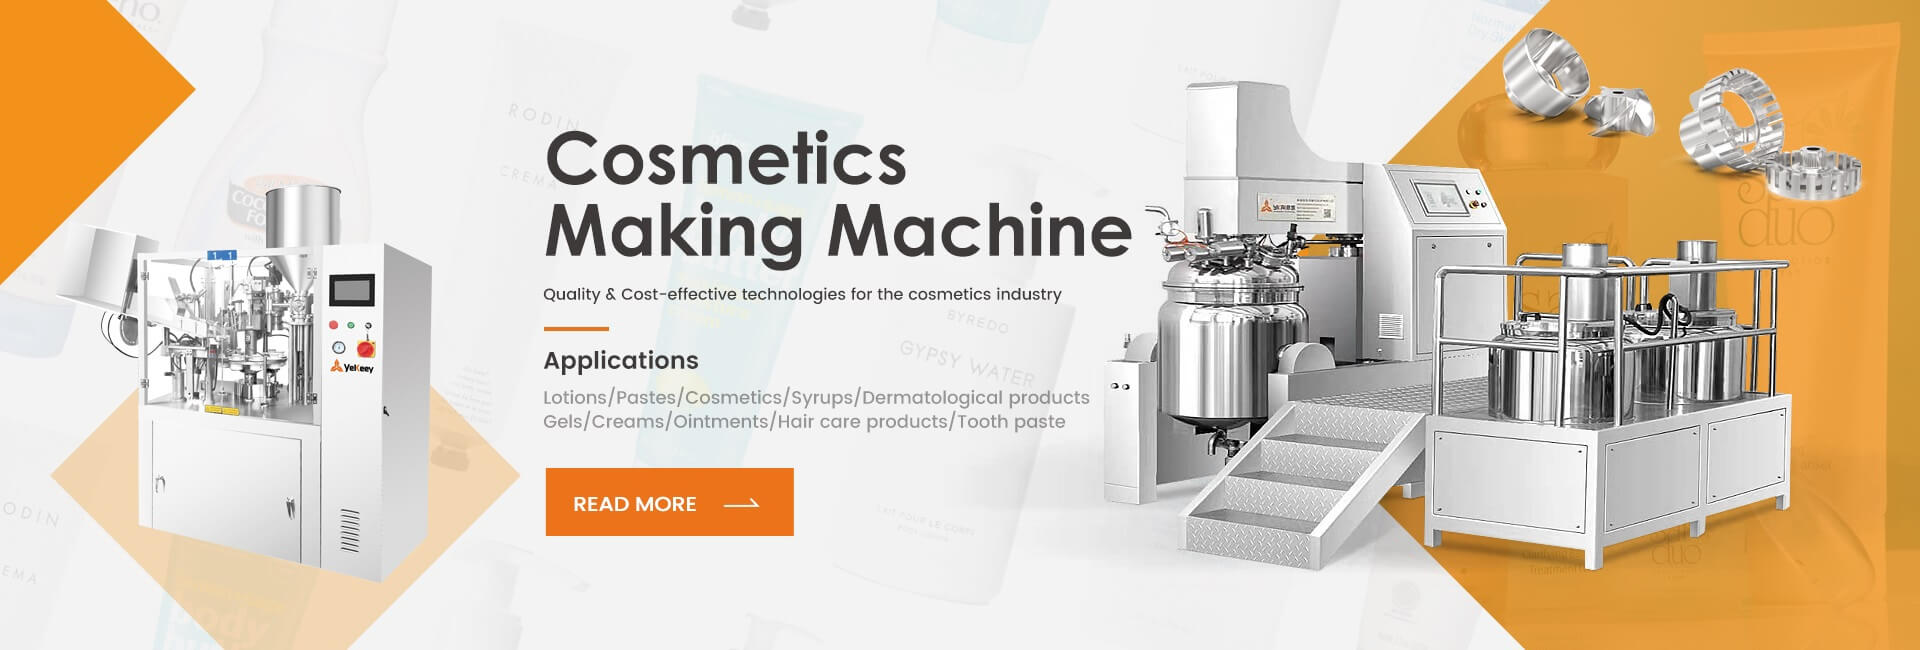 cossmetics making machine